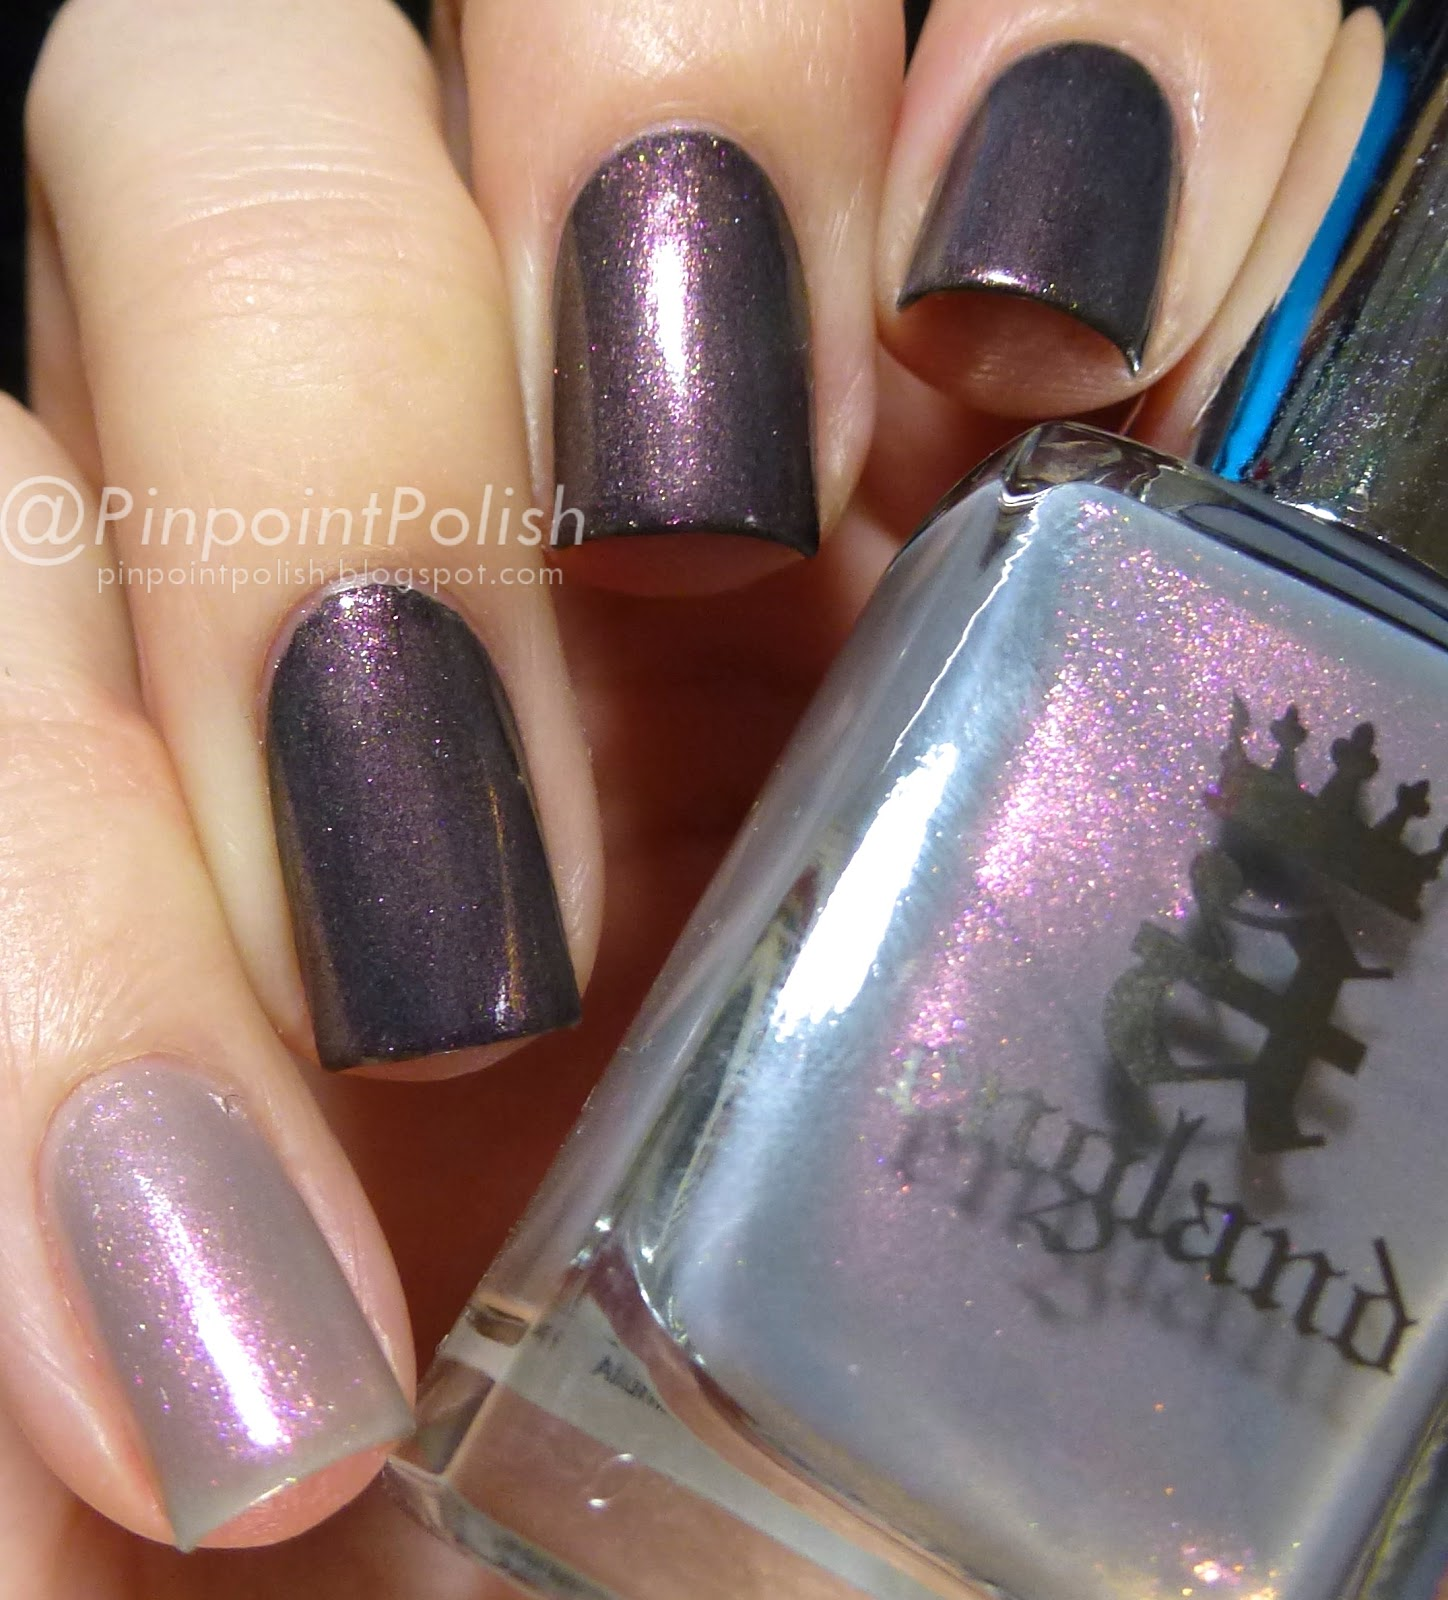 Hurt No Living Thing, a-england, Heavenly quote, swatch